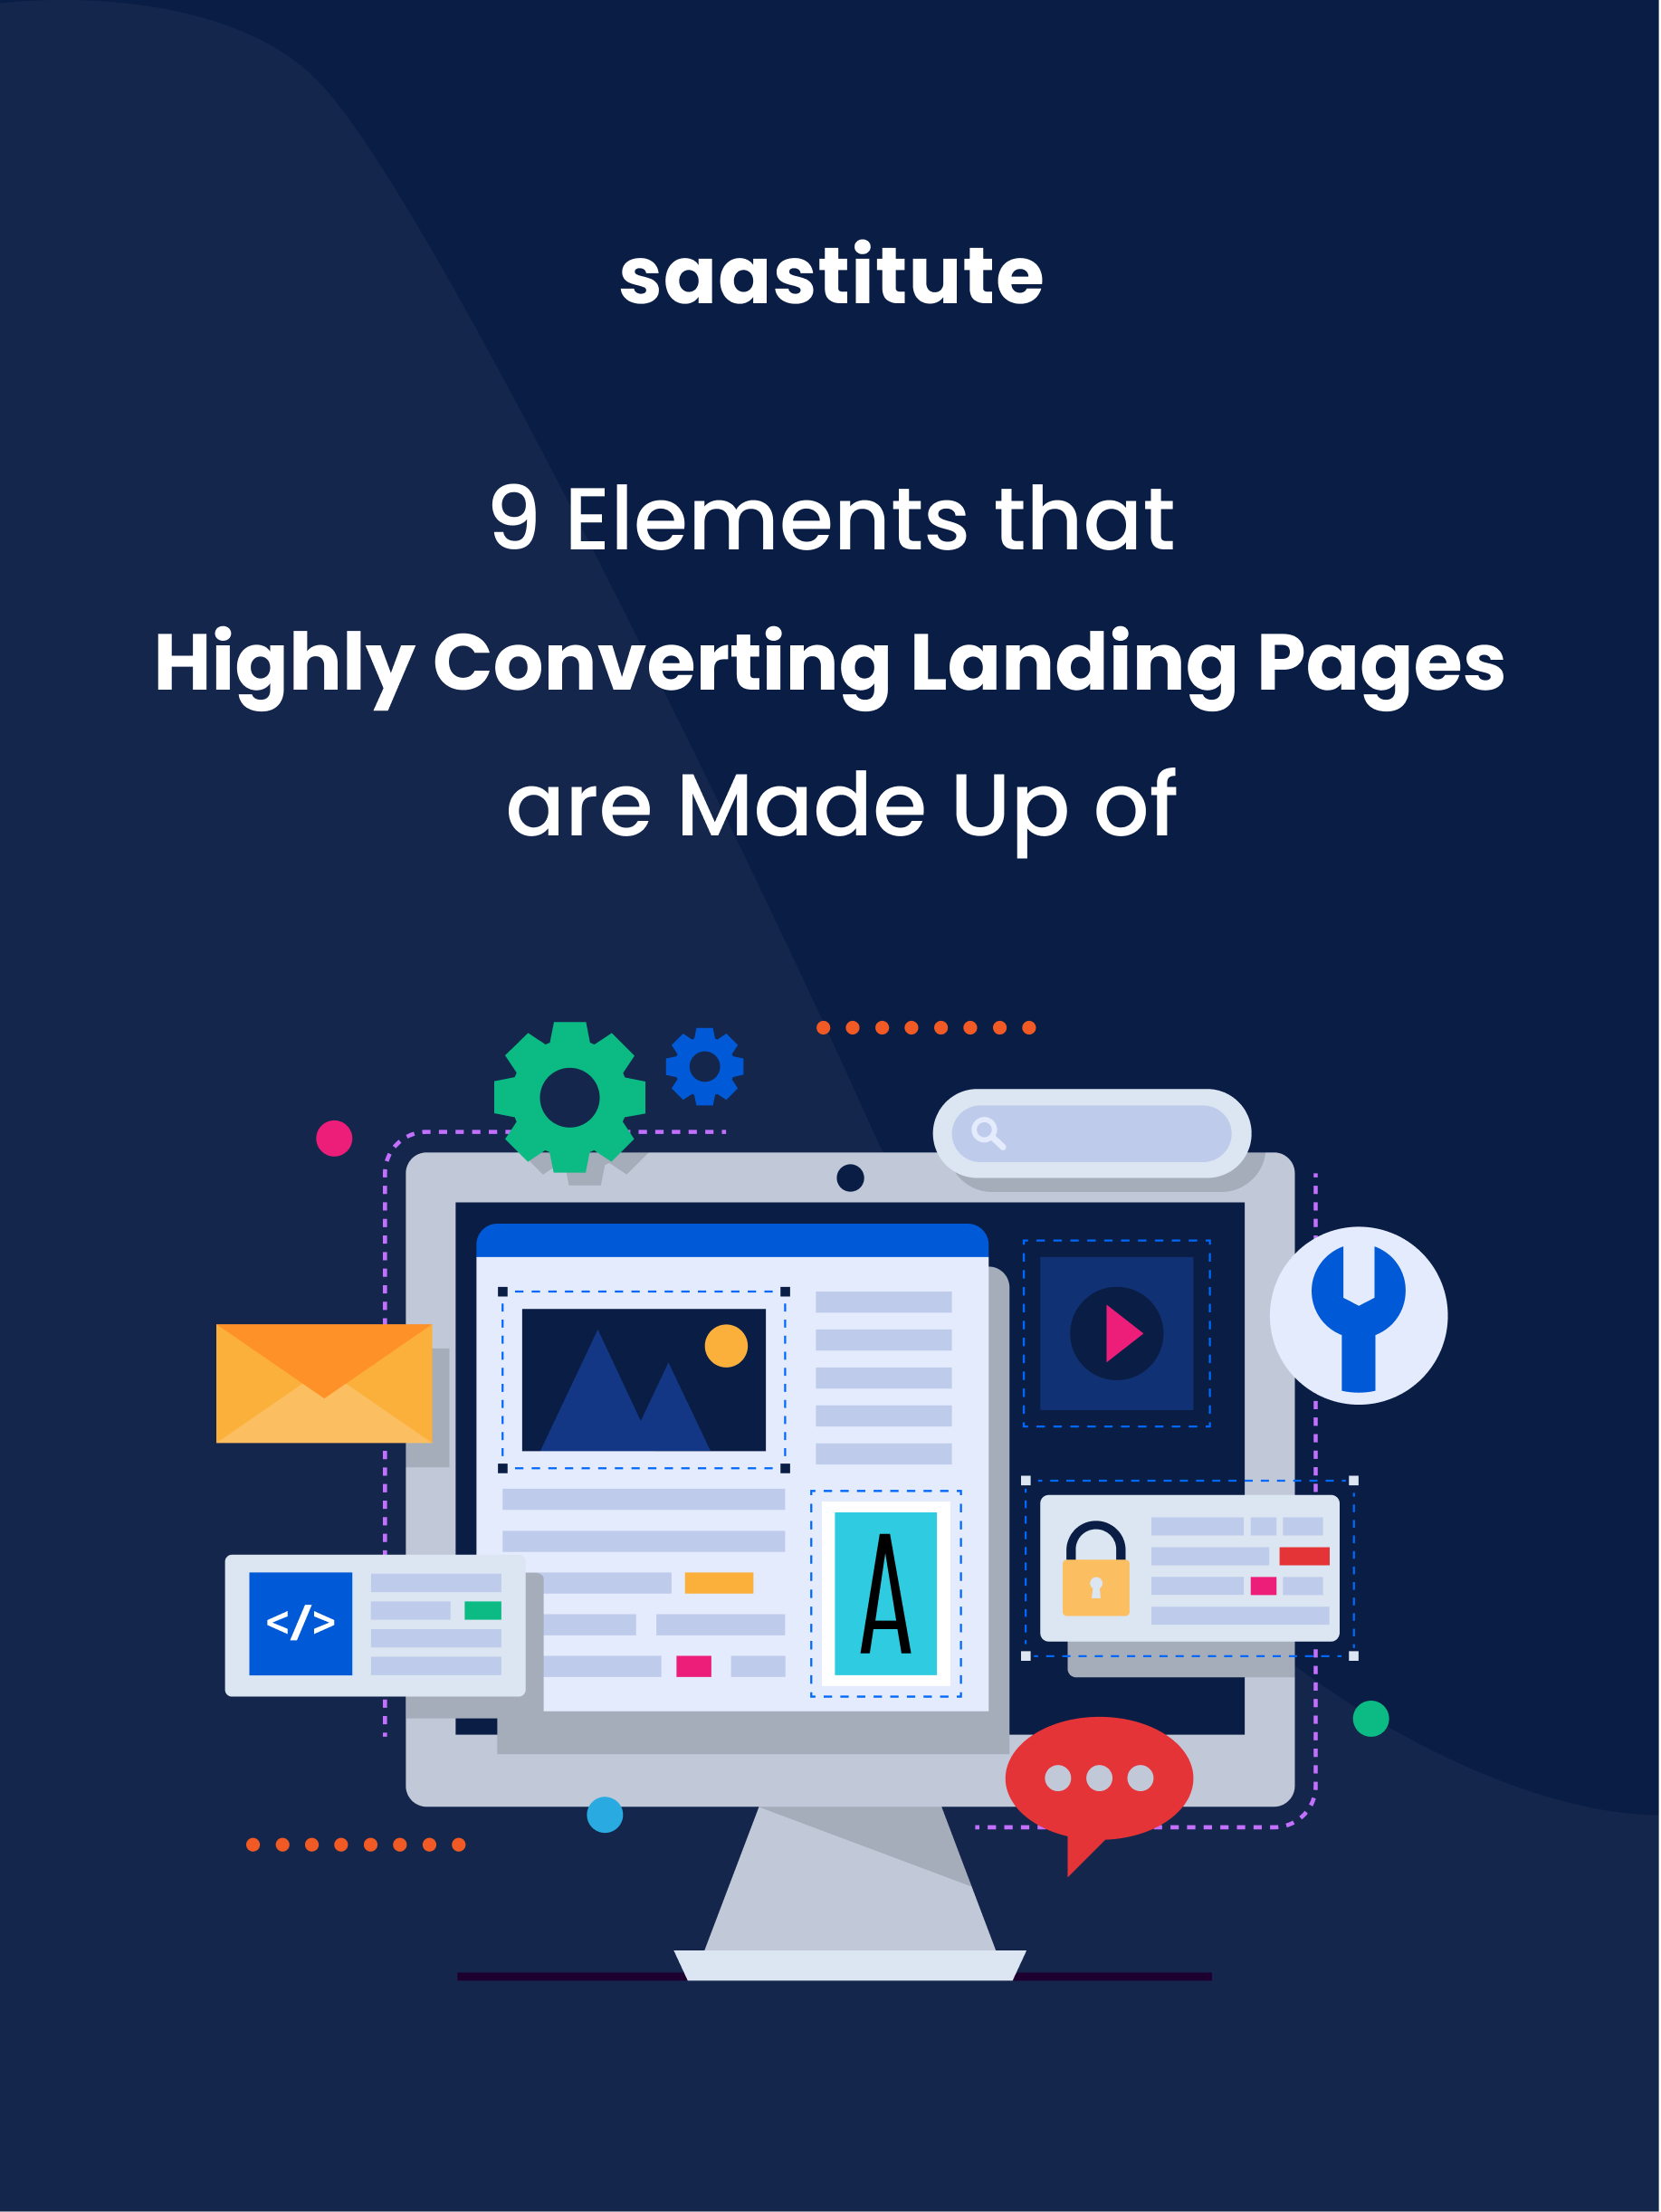 9 Elements that Highly Converting Landing Pages are Made Up of